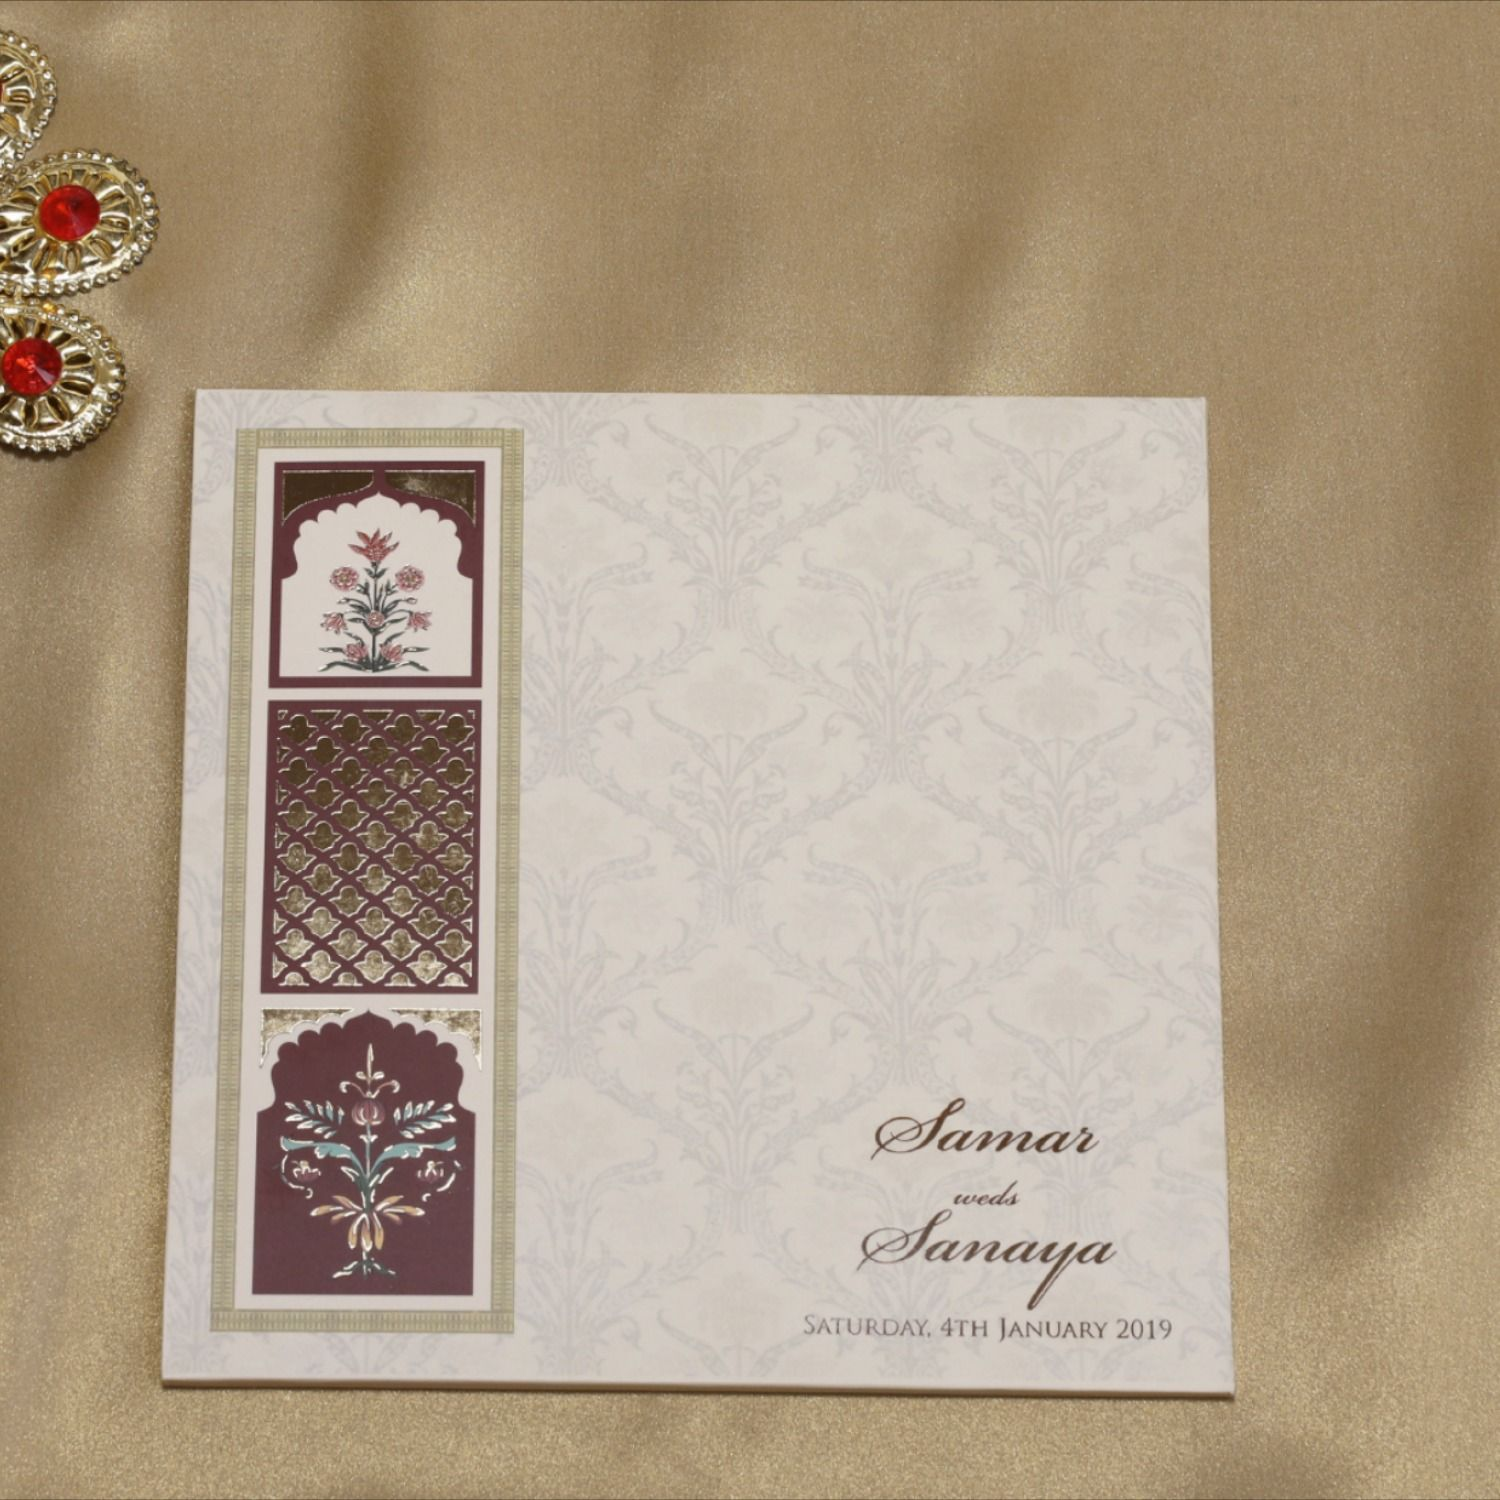 Shop an exclusive collection of #WeddingCards, #IndianWeddingCards from #MudrikaaPrints.  We have the best #weddinginvitationcard designers in Bangalore.  #Wedding #Marriage #MarriageCard #Invitation #ShaadiCard #IndianCard #Shaadi #Card